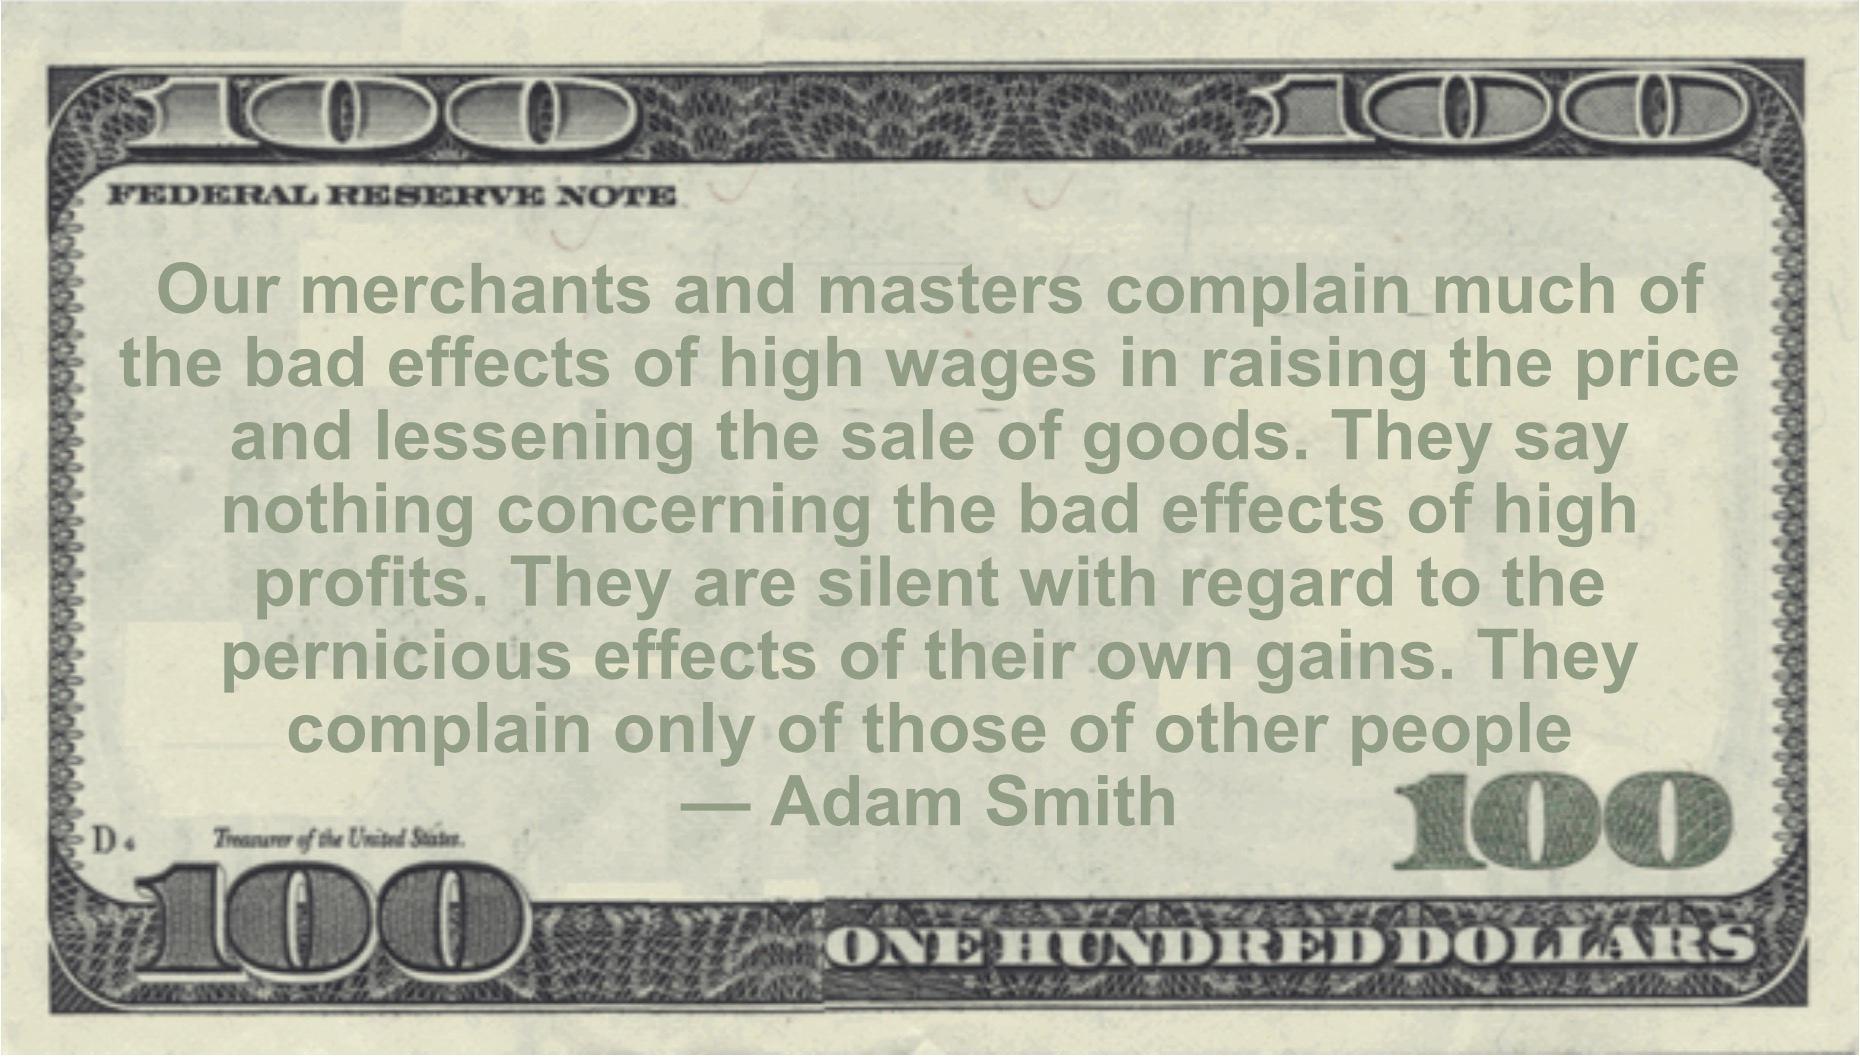 Our merchants and masters complain much of the bad effects of high wages in raising the price and lessening the sale of goods. They say nothing concerning the bad effects of high profits Quote